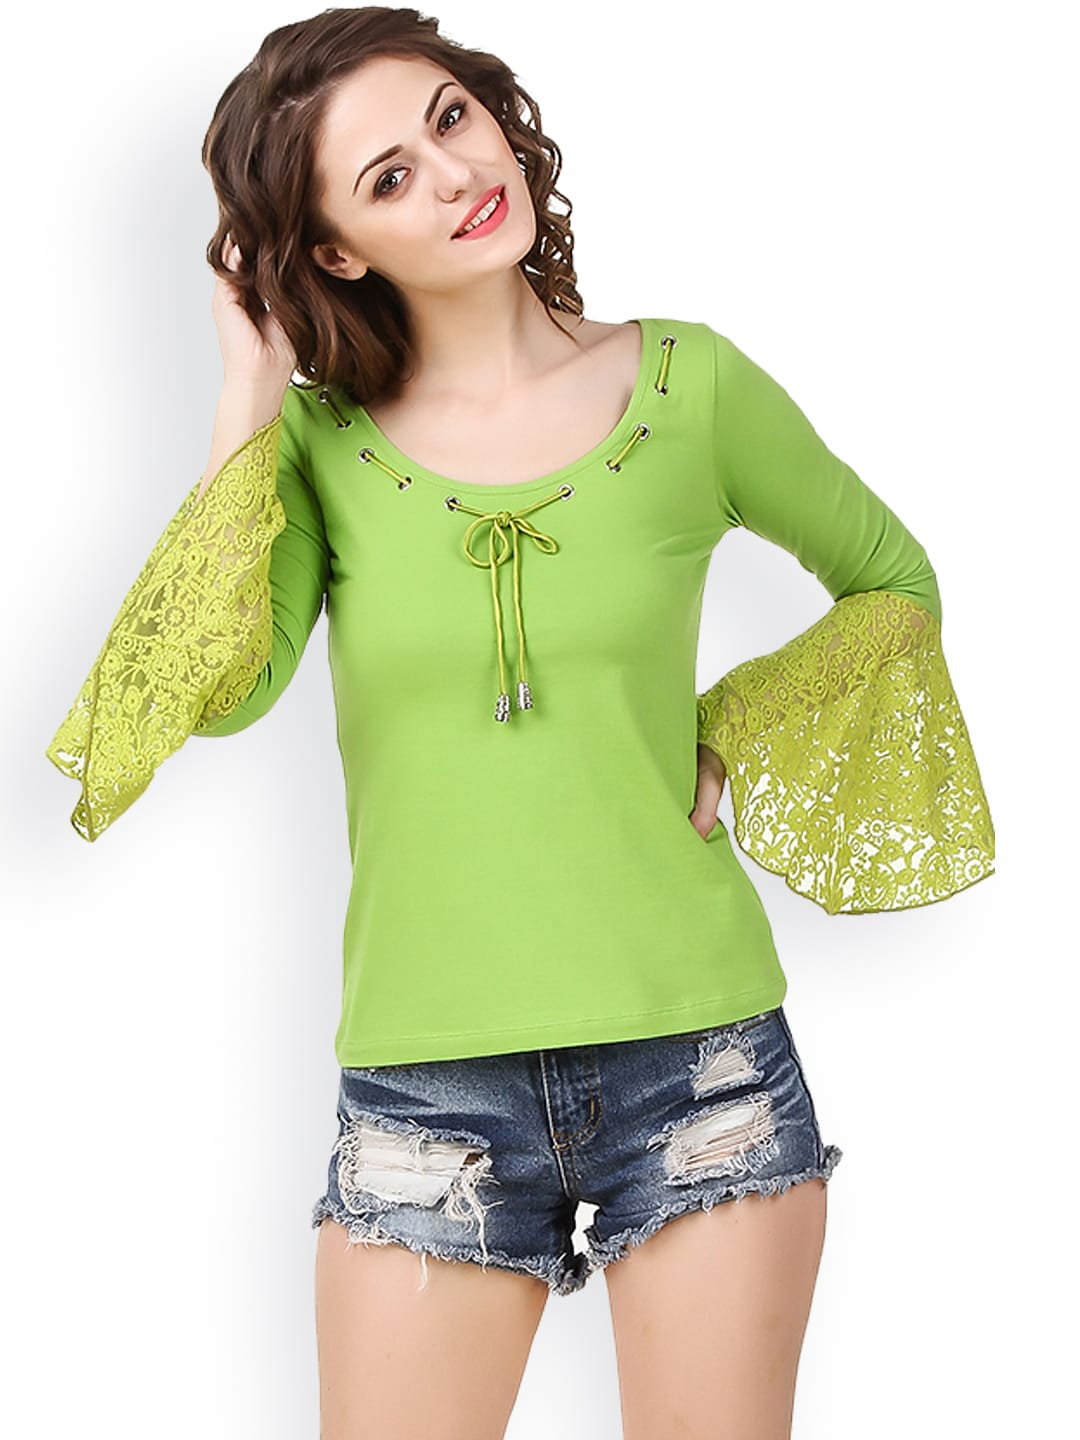 d2de8ef8cd2aff Green Lace Tops - Buy Green Lace Tops online in India